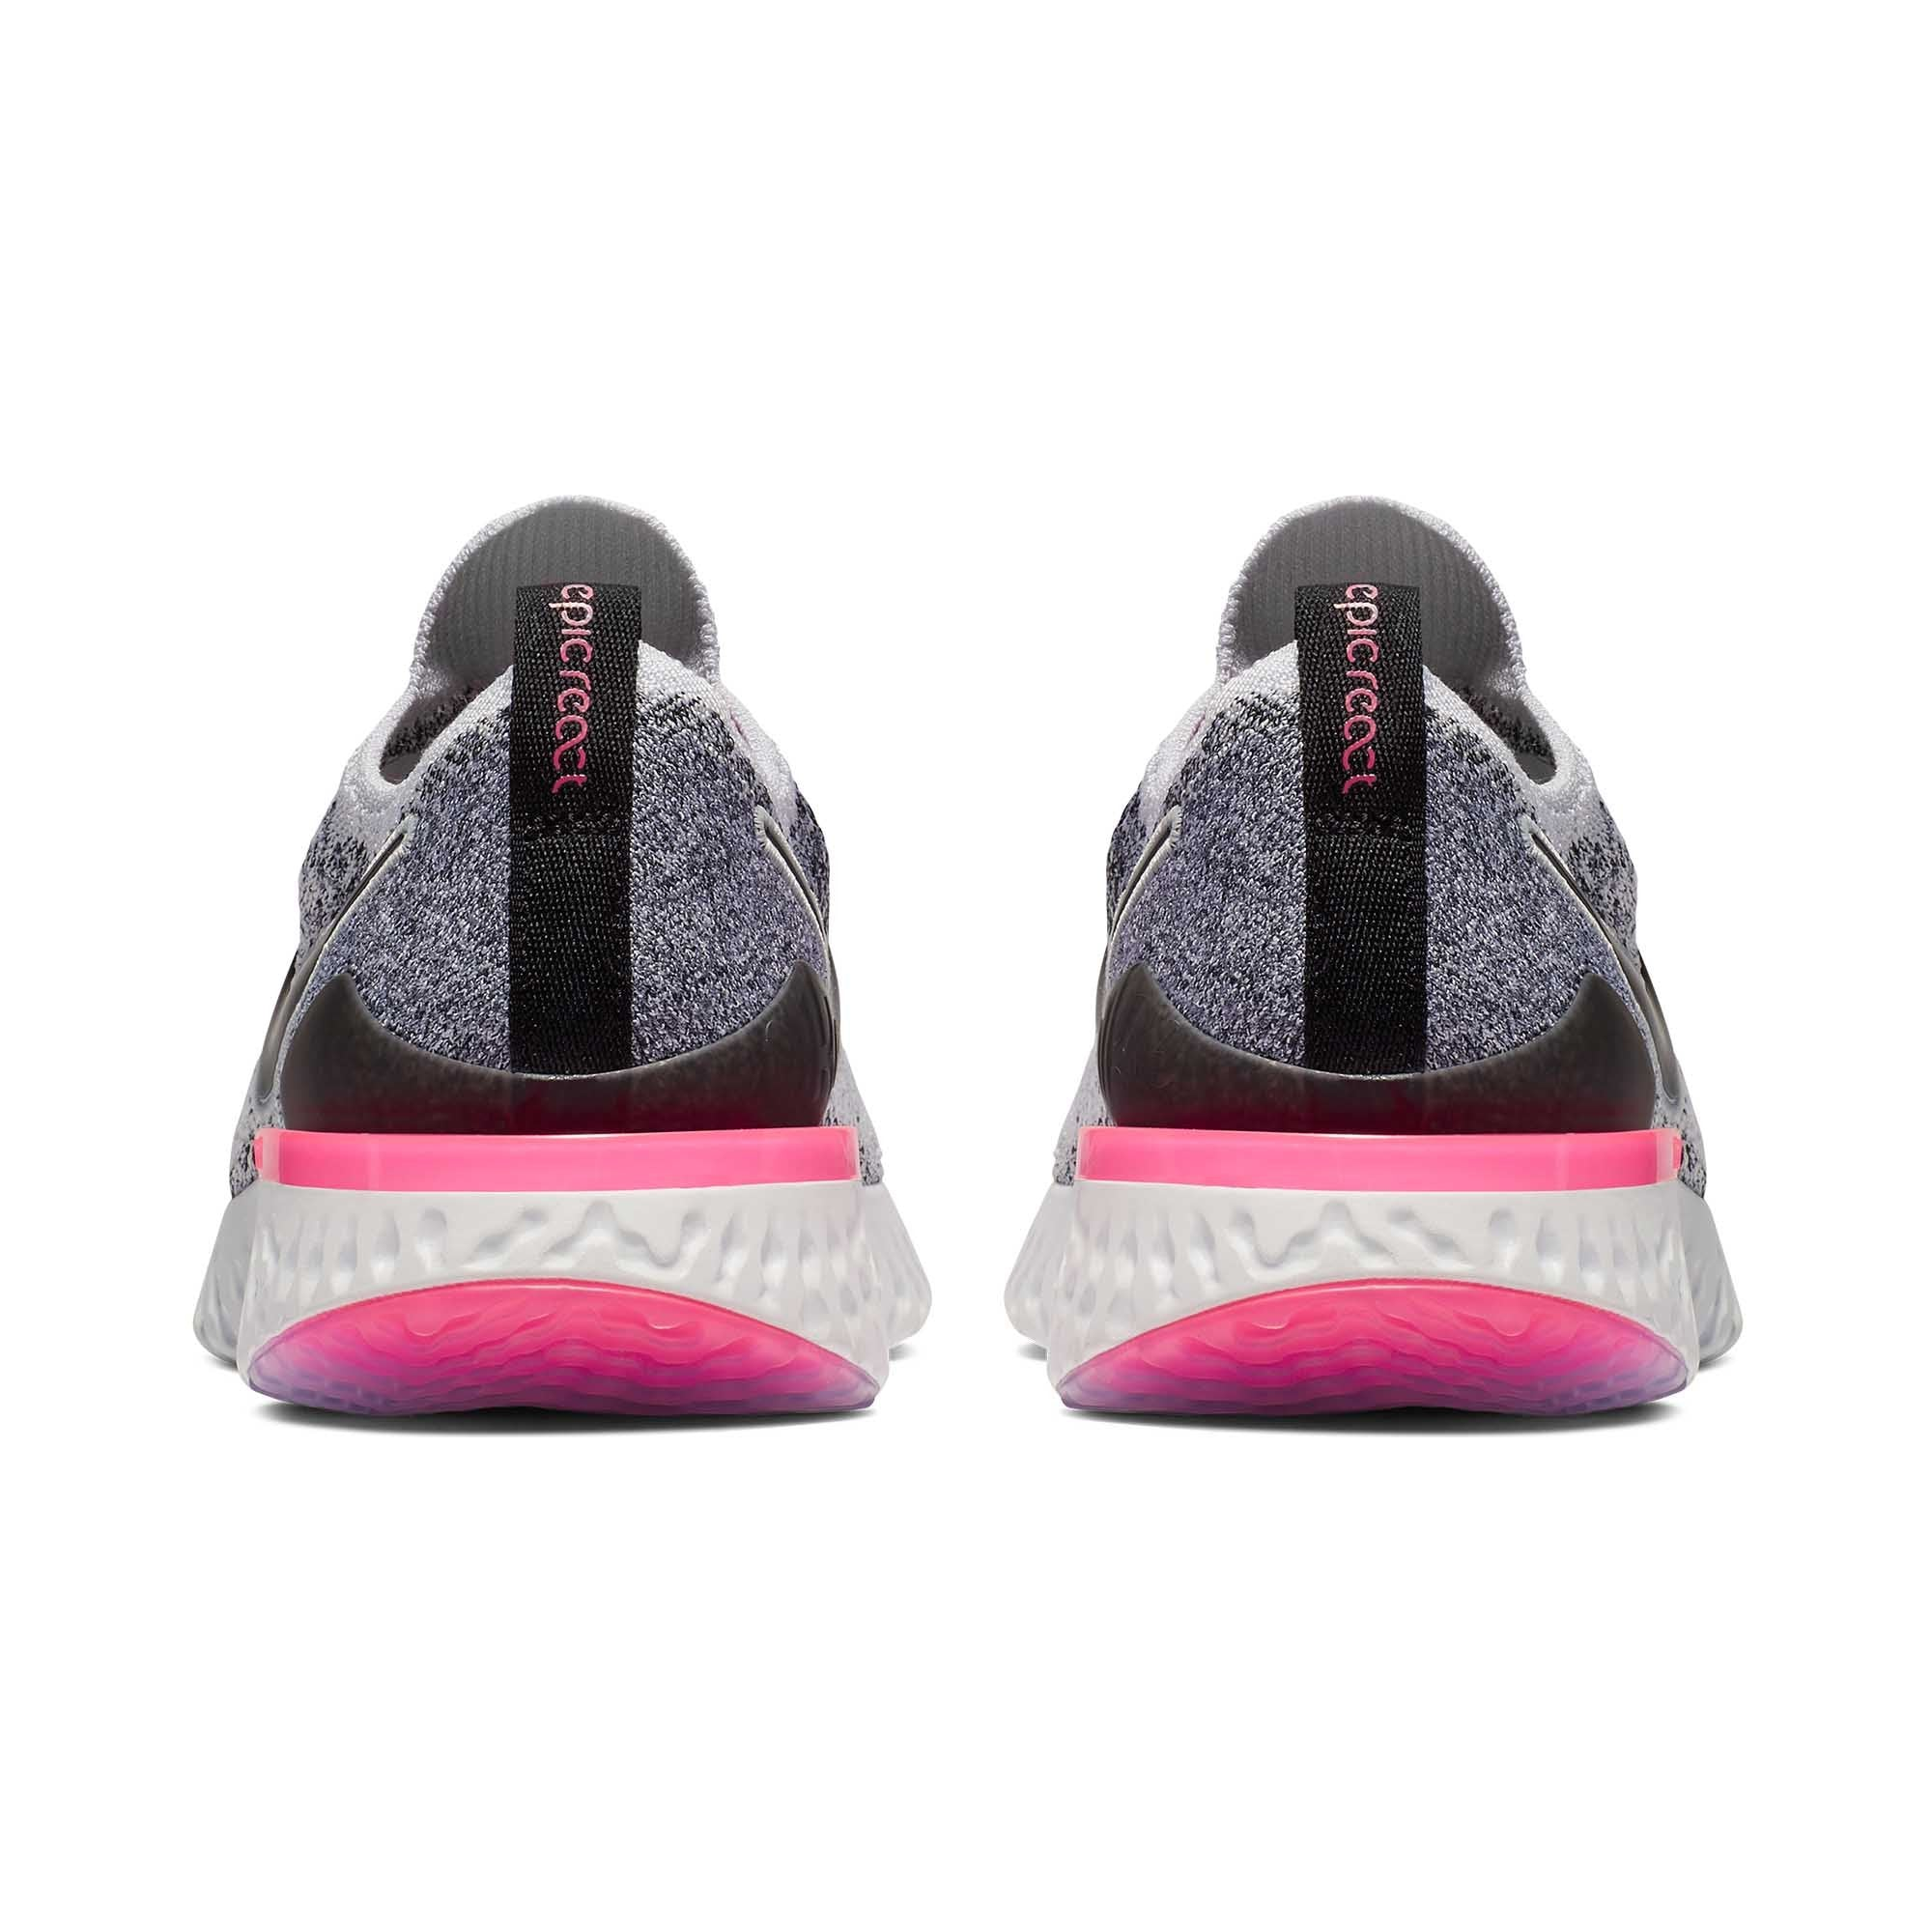 1362a2bc6658 Buy Nike Women Epic React Flyknit 2 Running Shoes Online in ...